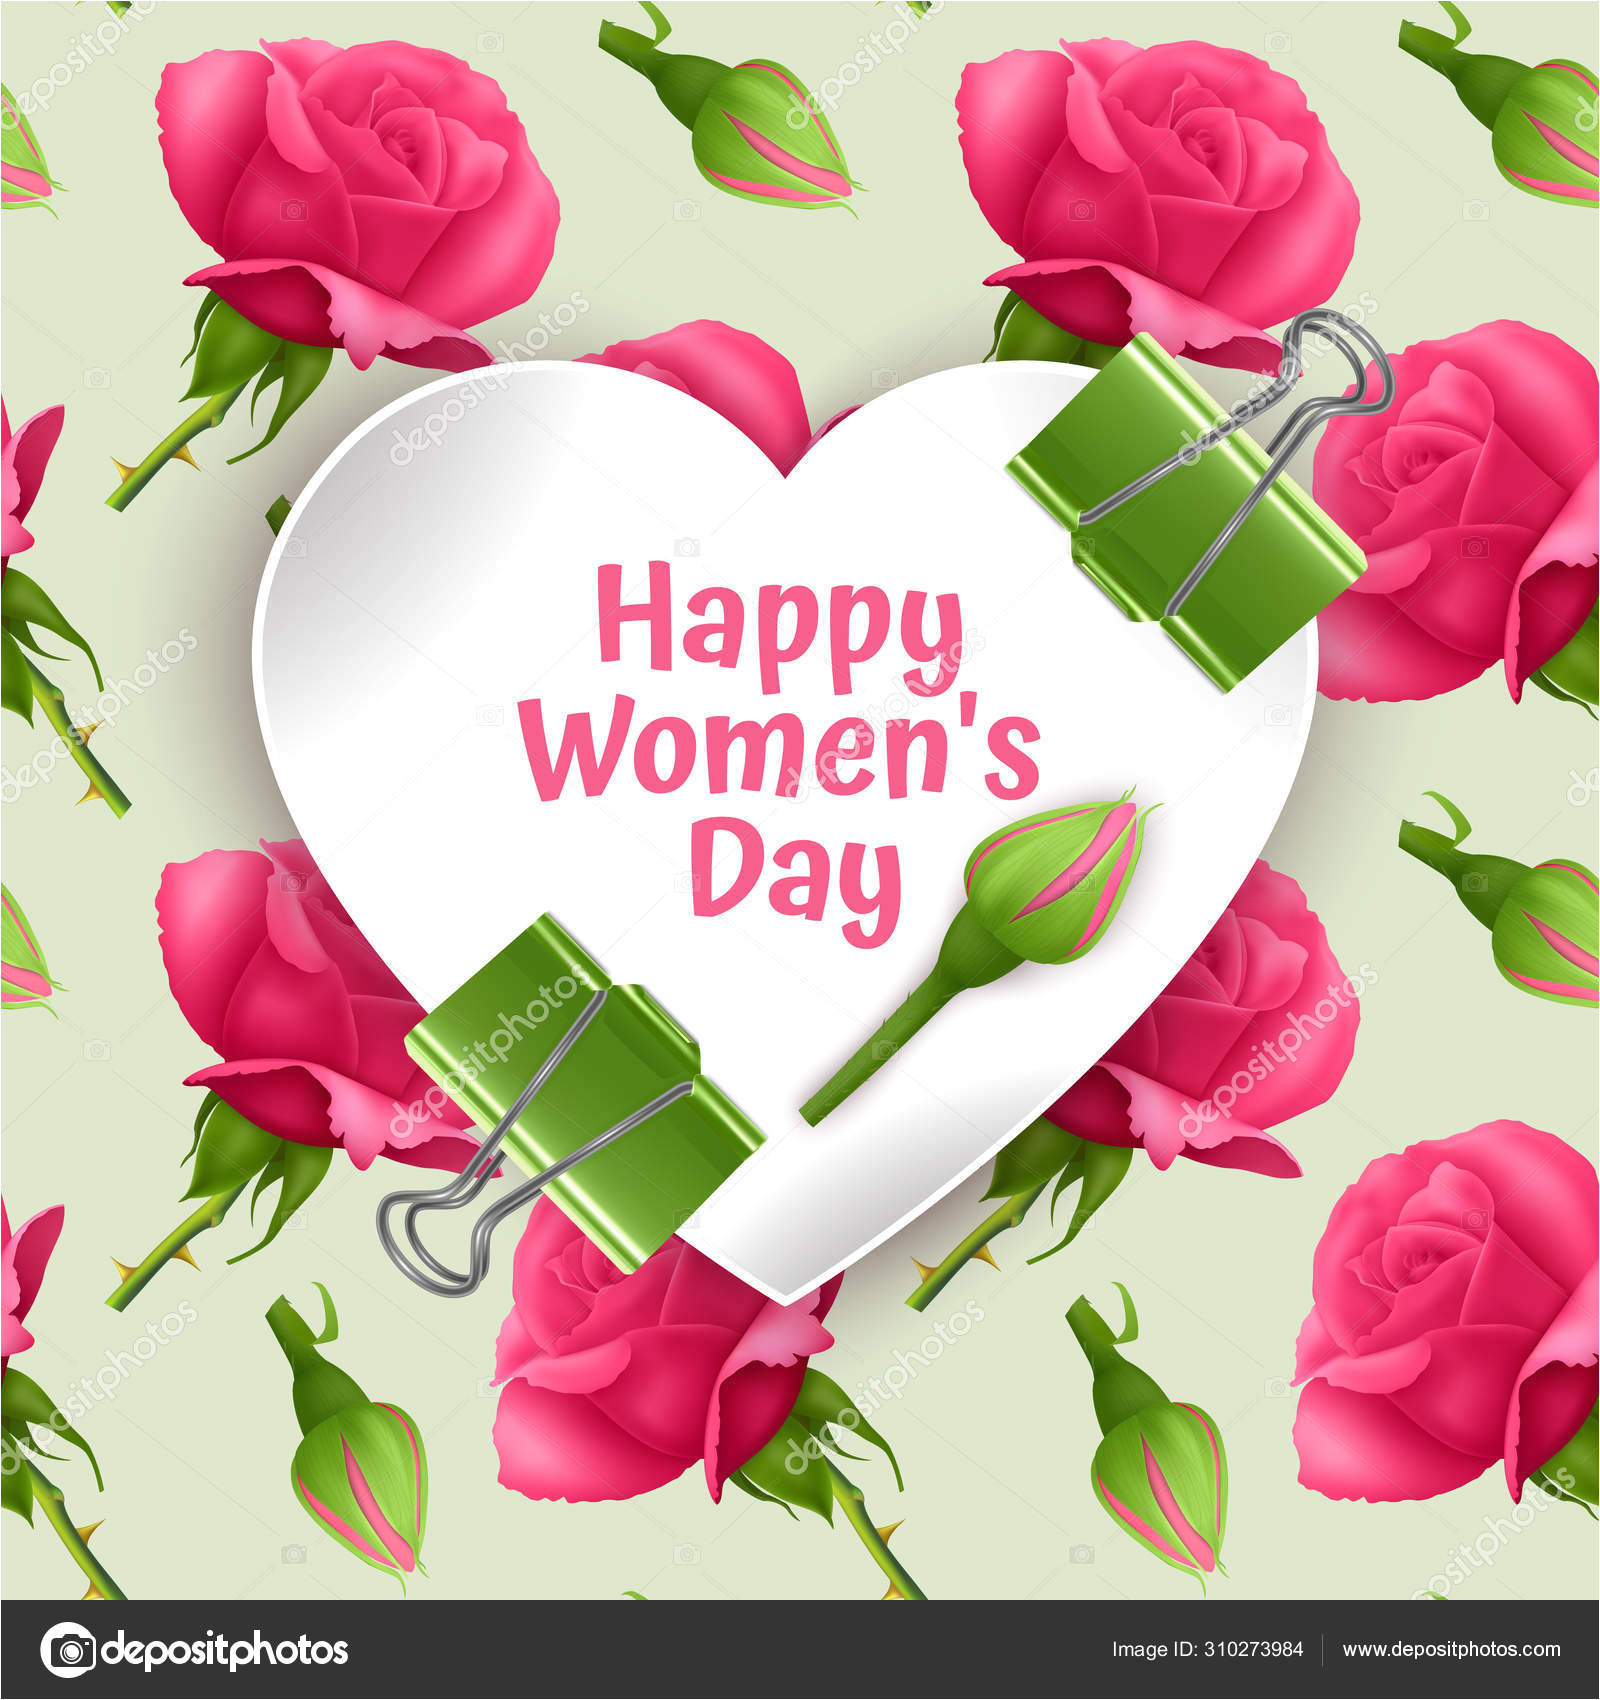 depositphotos 310273984 stock illustration greeting card happy womens day jpg